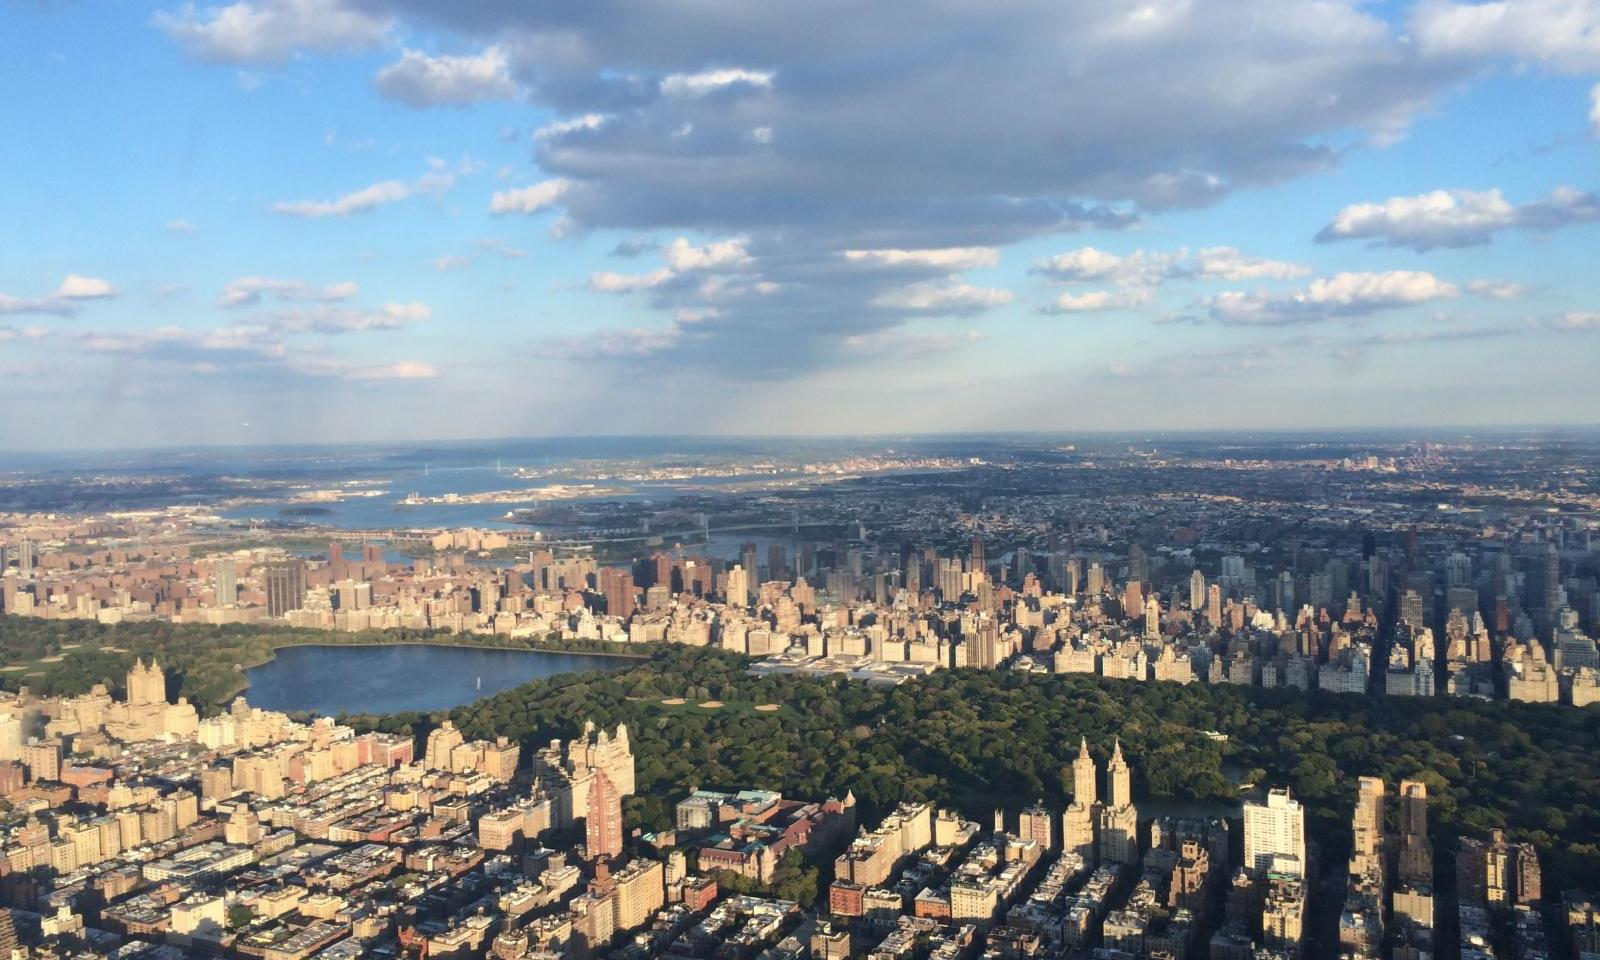 ny city helicopter tours with Helicopter Ride New York on Victorias Secret New York likewise Doubletree Suites Hotel Times Square as well Niagara Falls Cdn On Onnf together with Helicopter Flights In New York besides Take Tour Brooklyn.